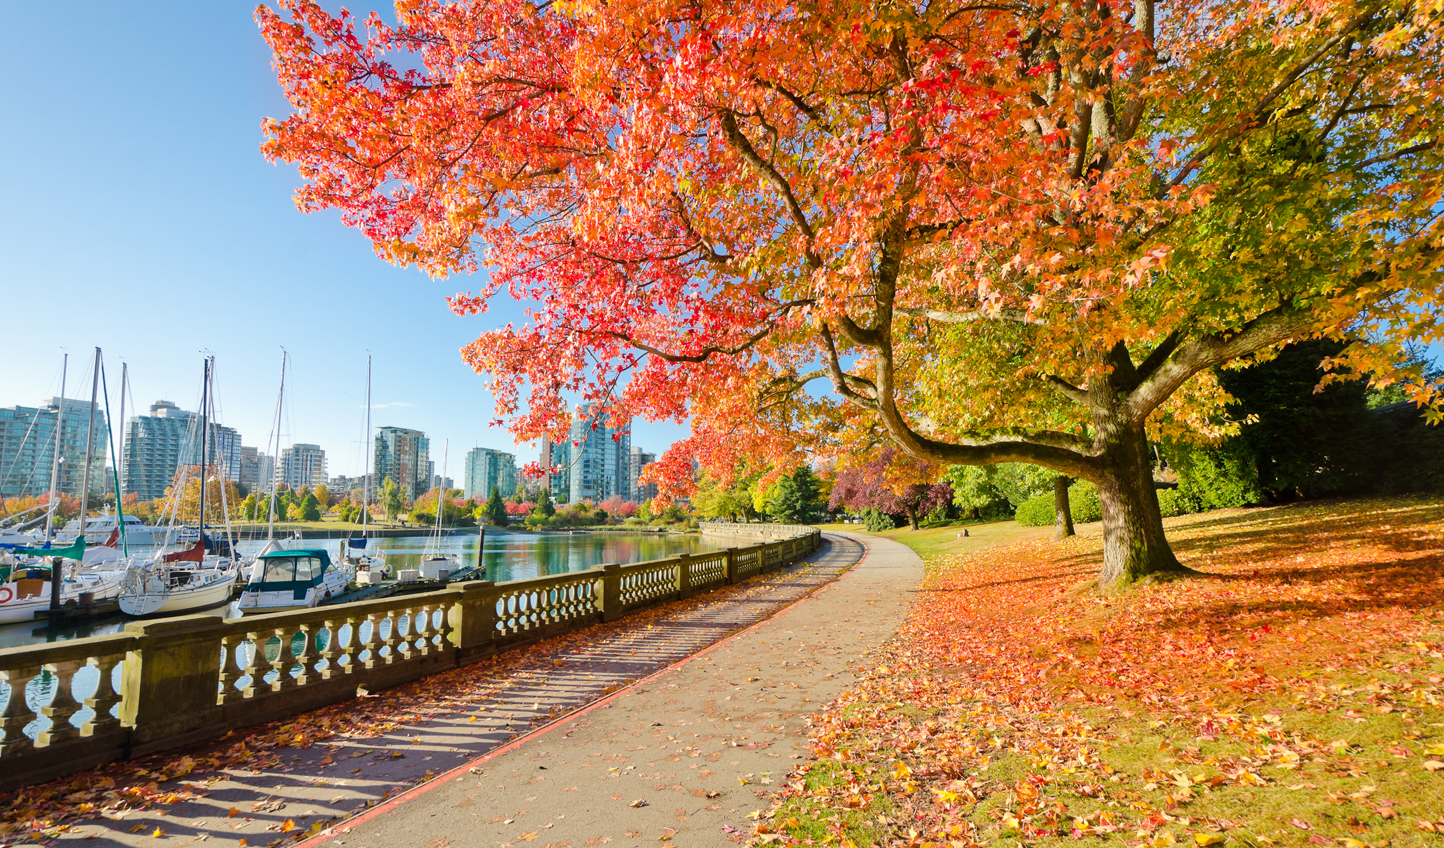 Cycle through Stanley Park